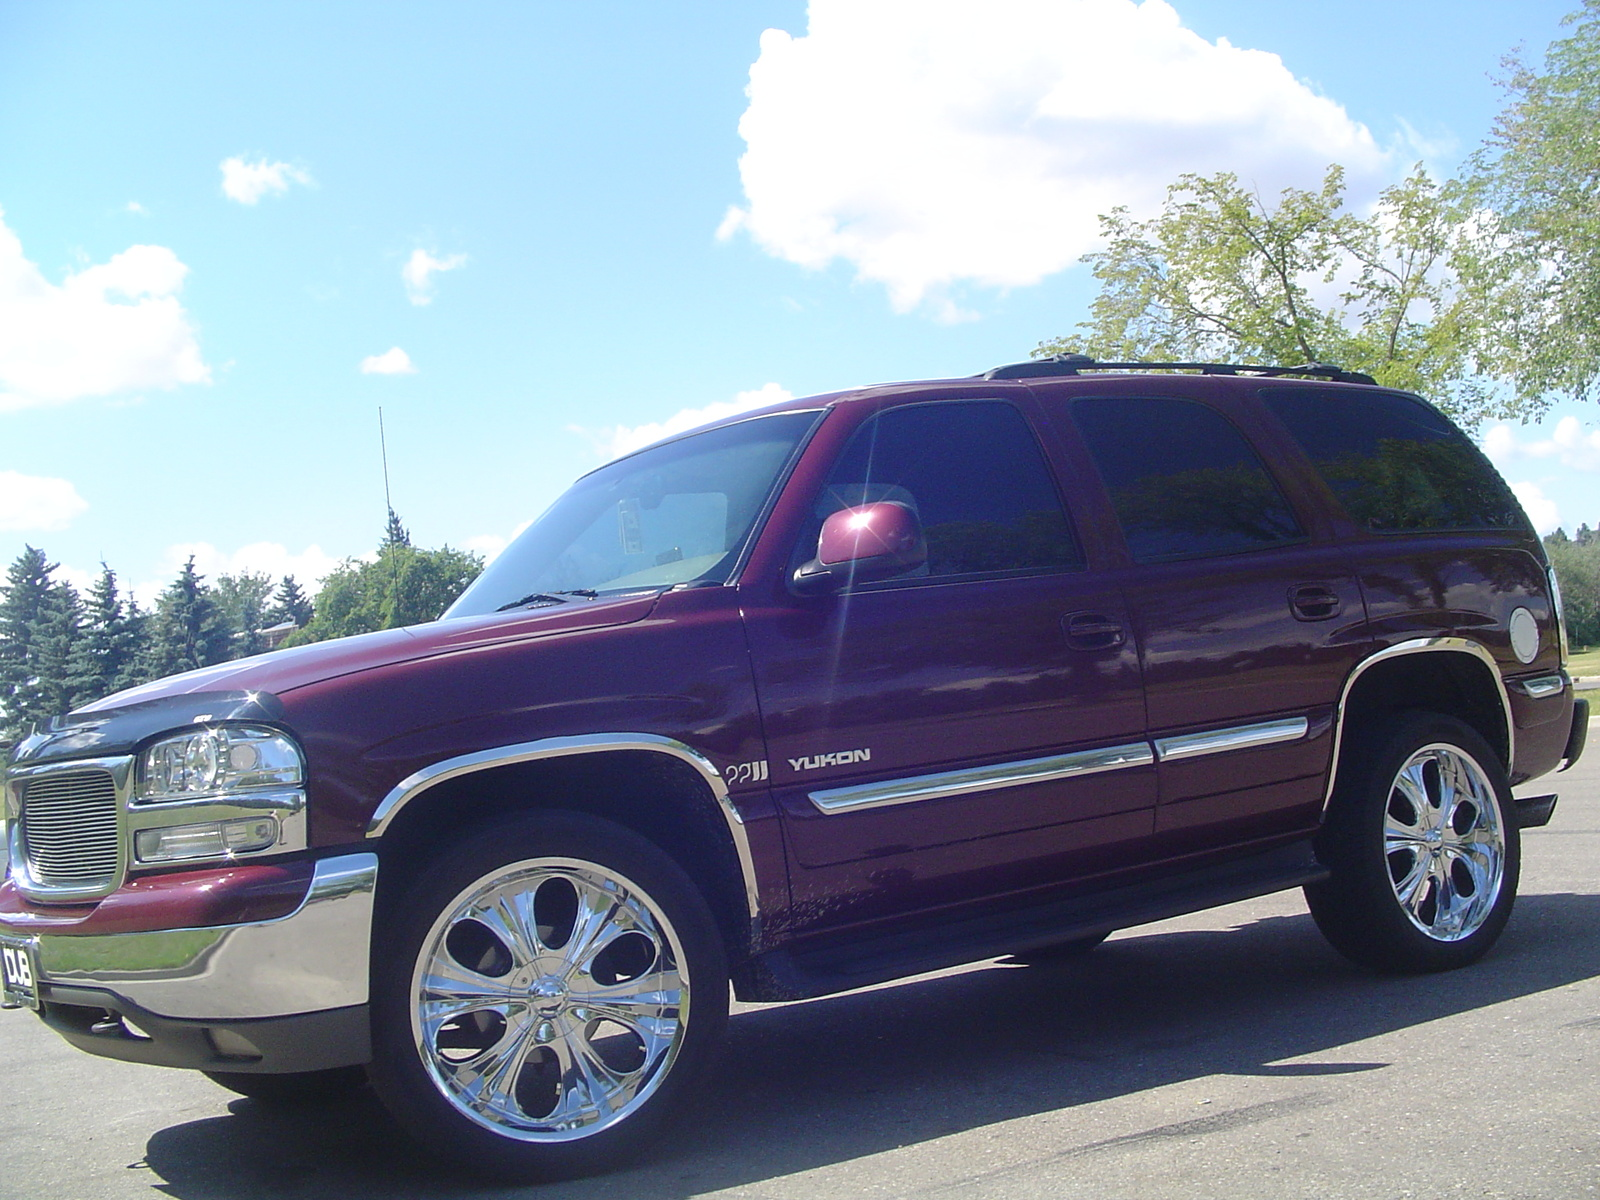 2000 GMC Yukon picture